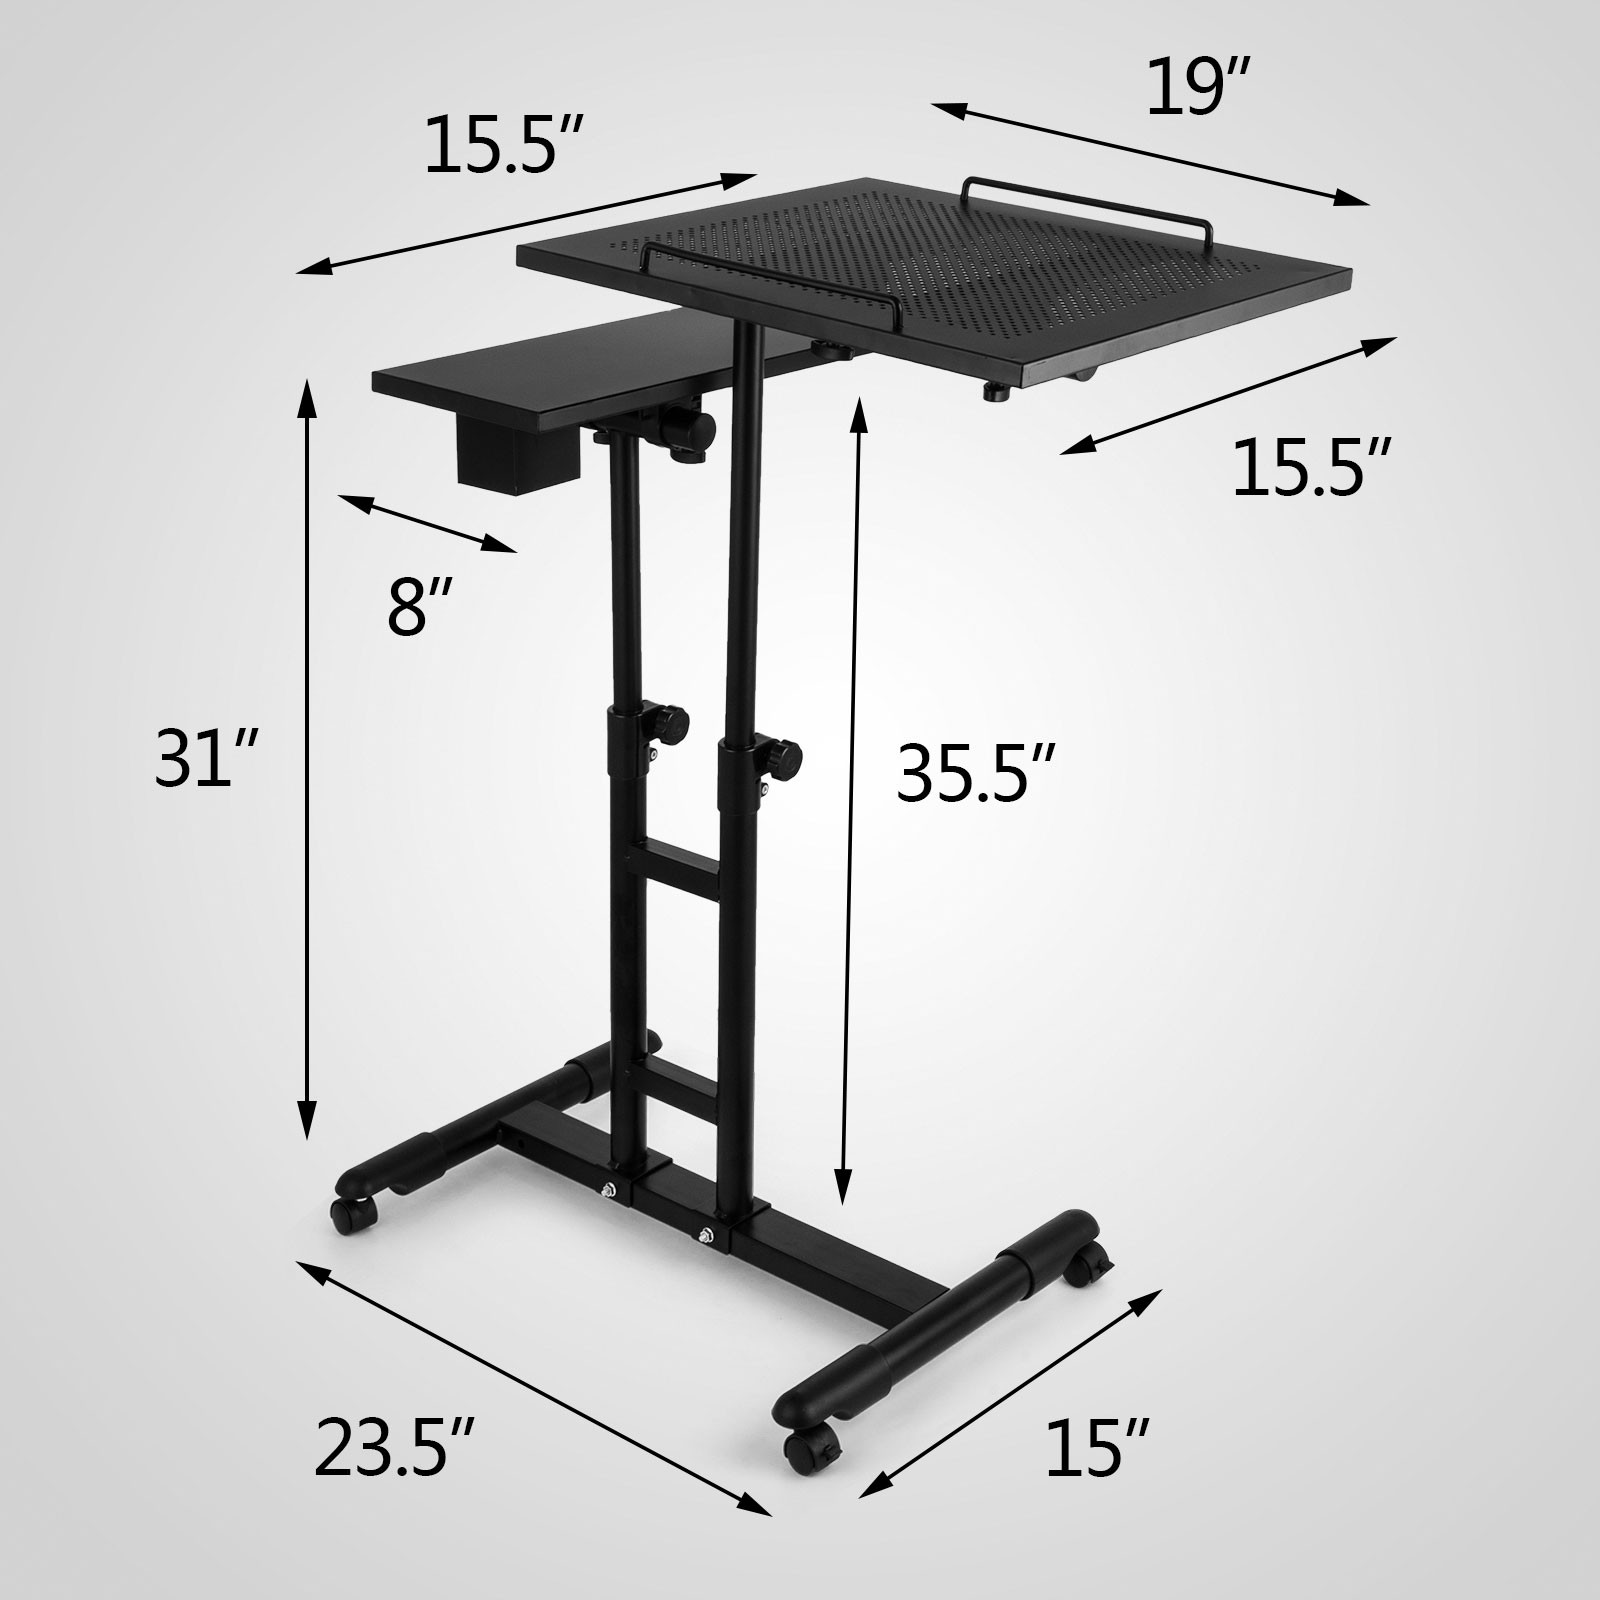 laptop angle langria with adjustable height desk mobile cart rolling lbs side and degree top us portable notebook table p itm swivel split